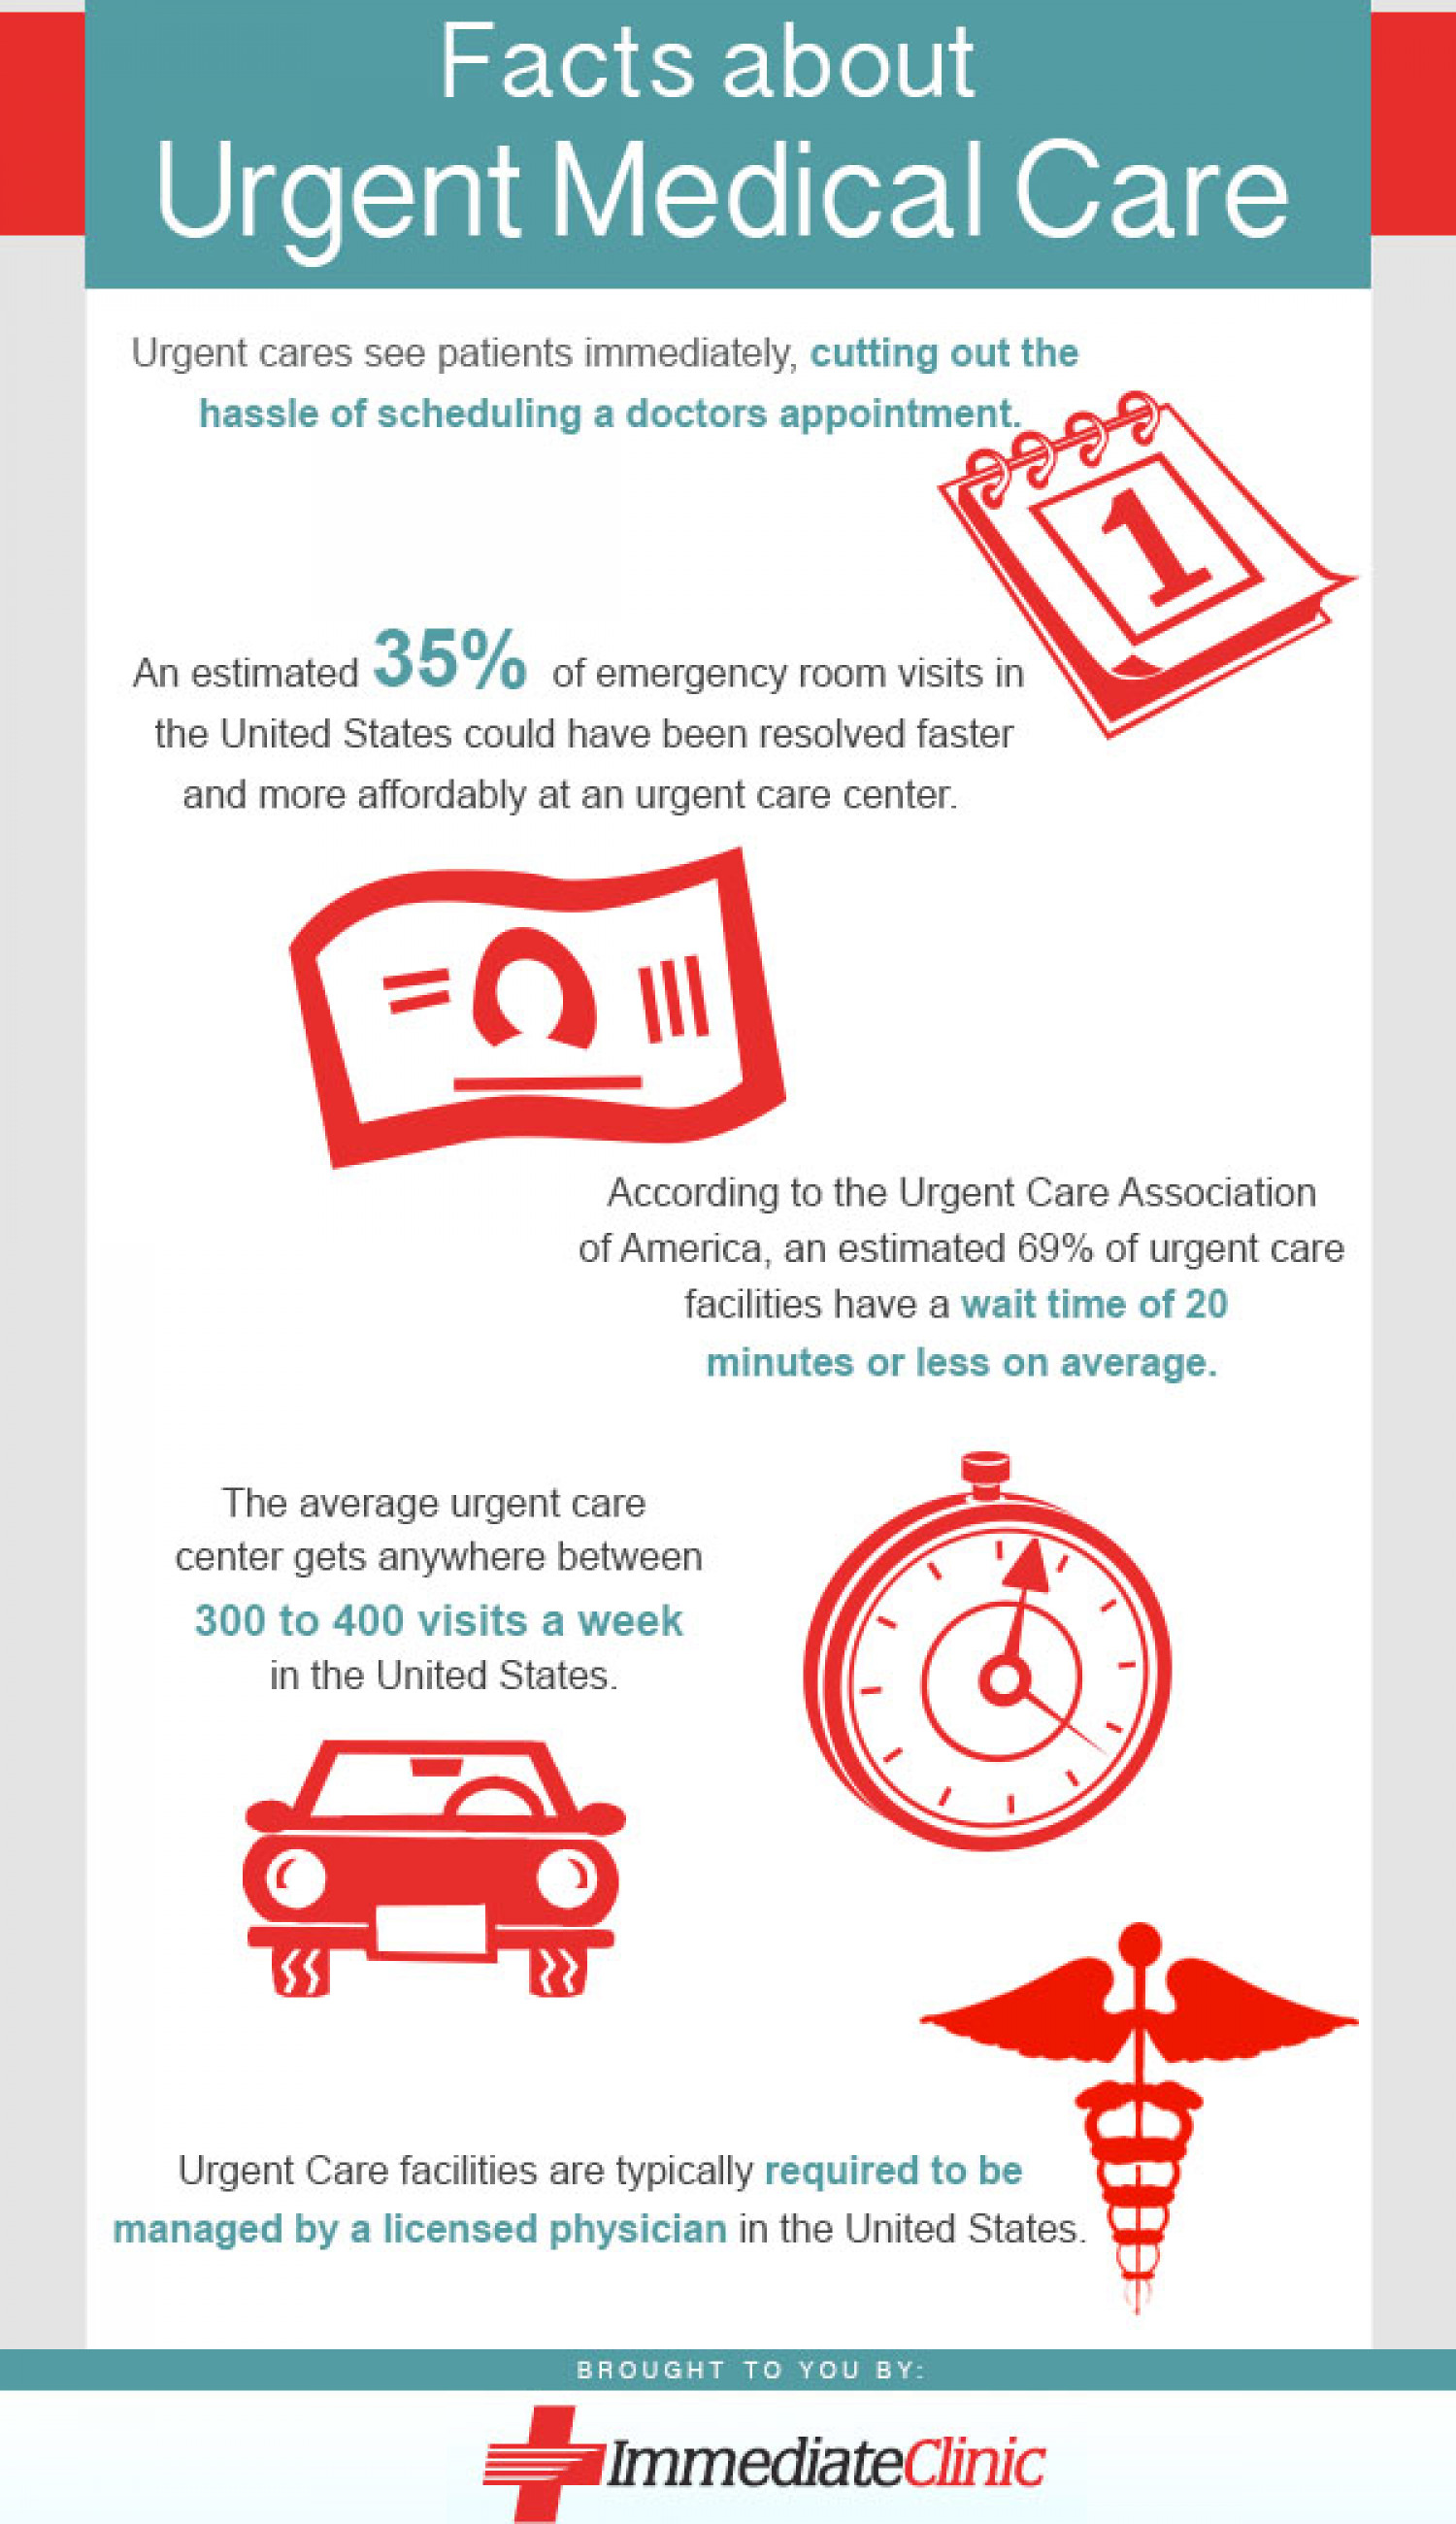 Facts About Urgent Medical Care Infographic